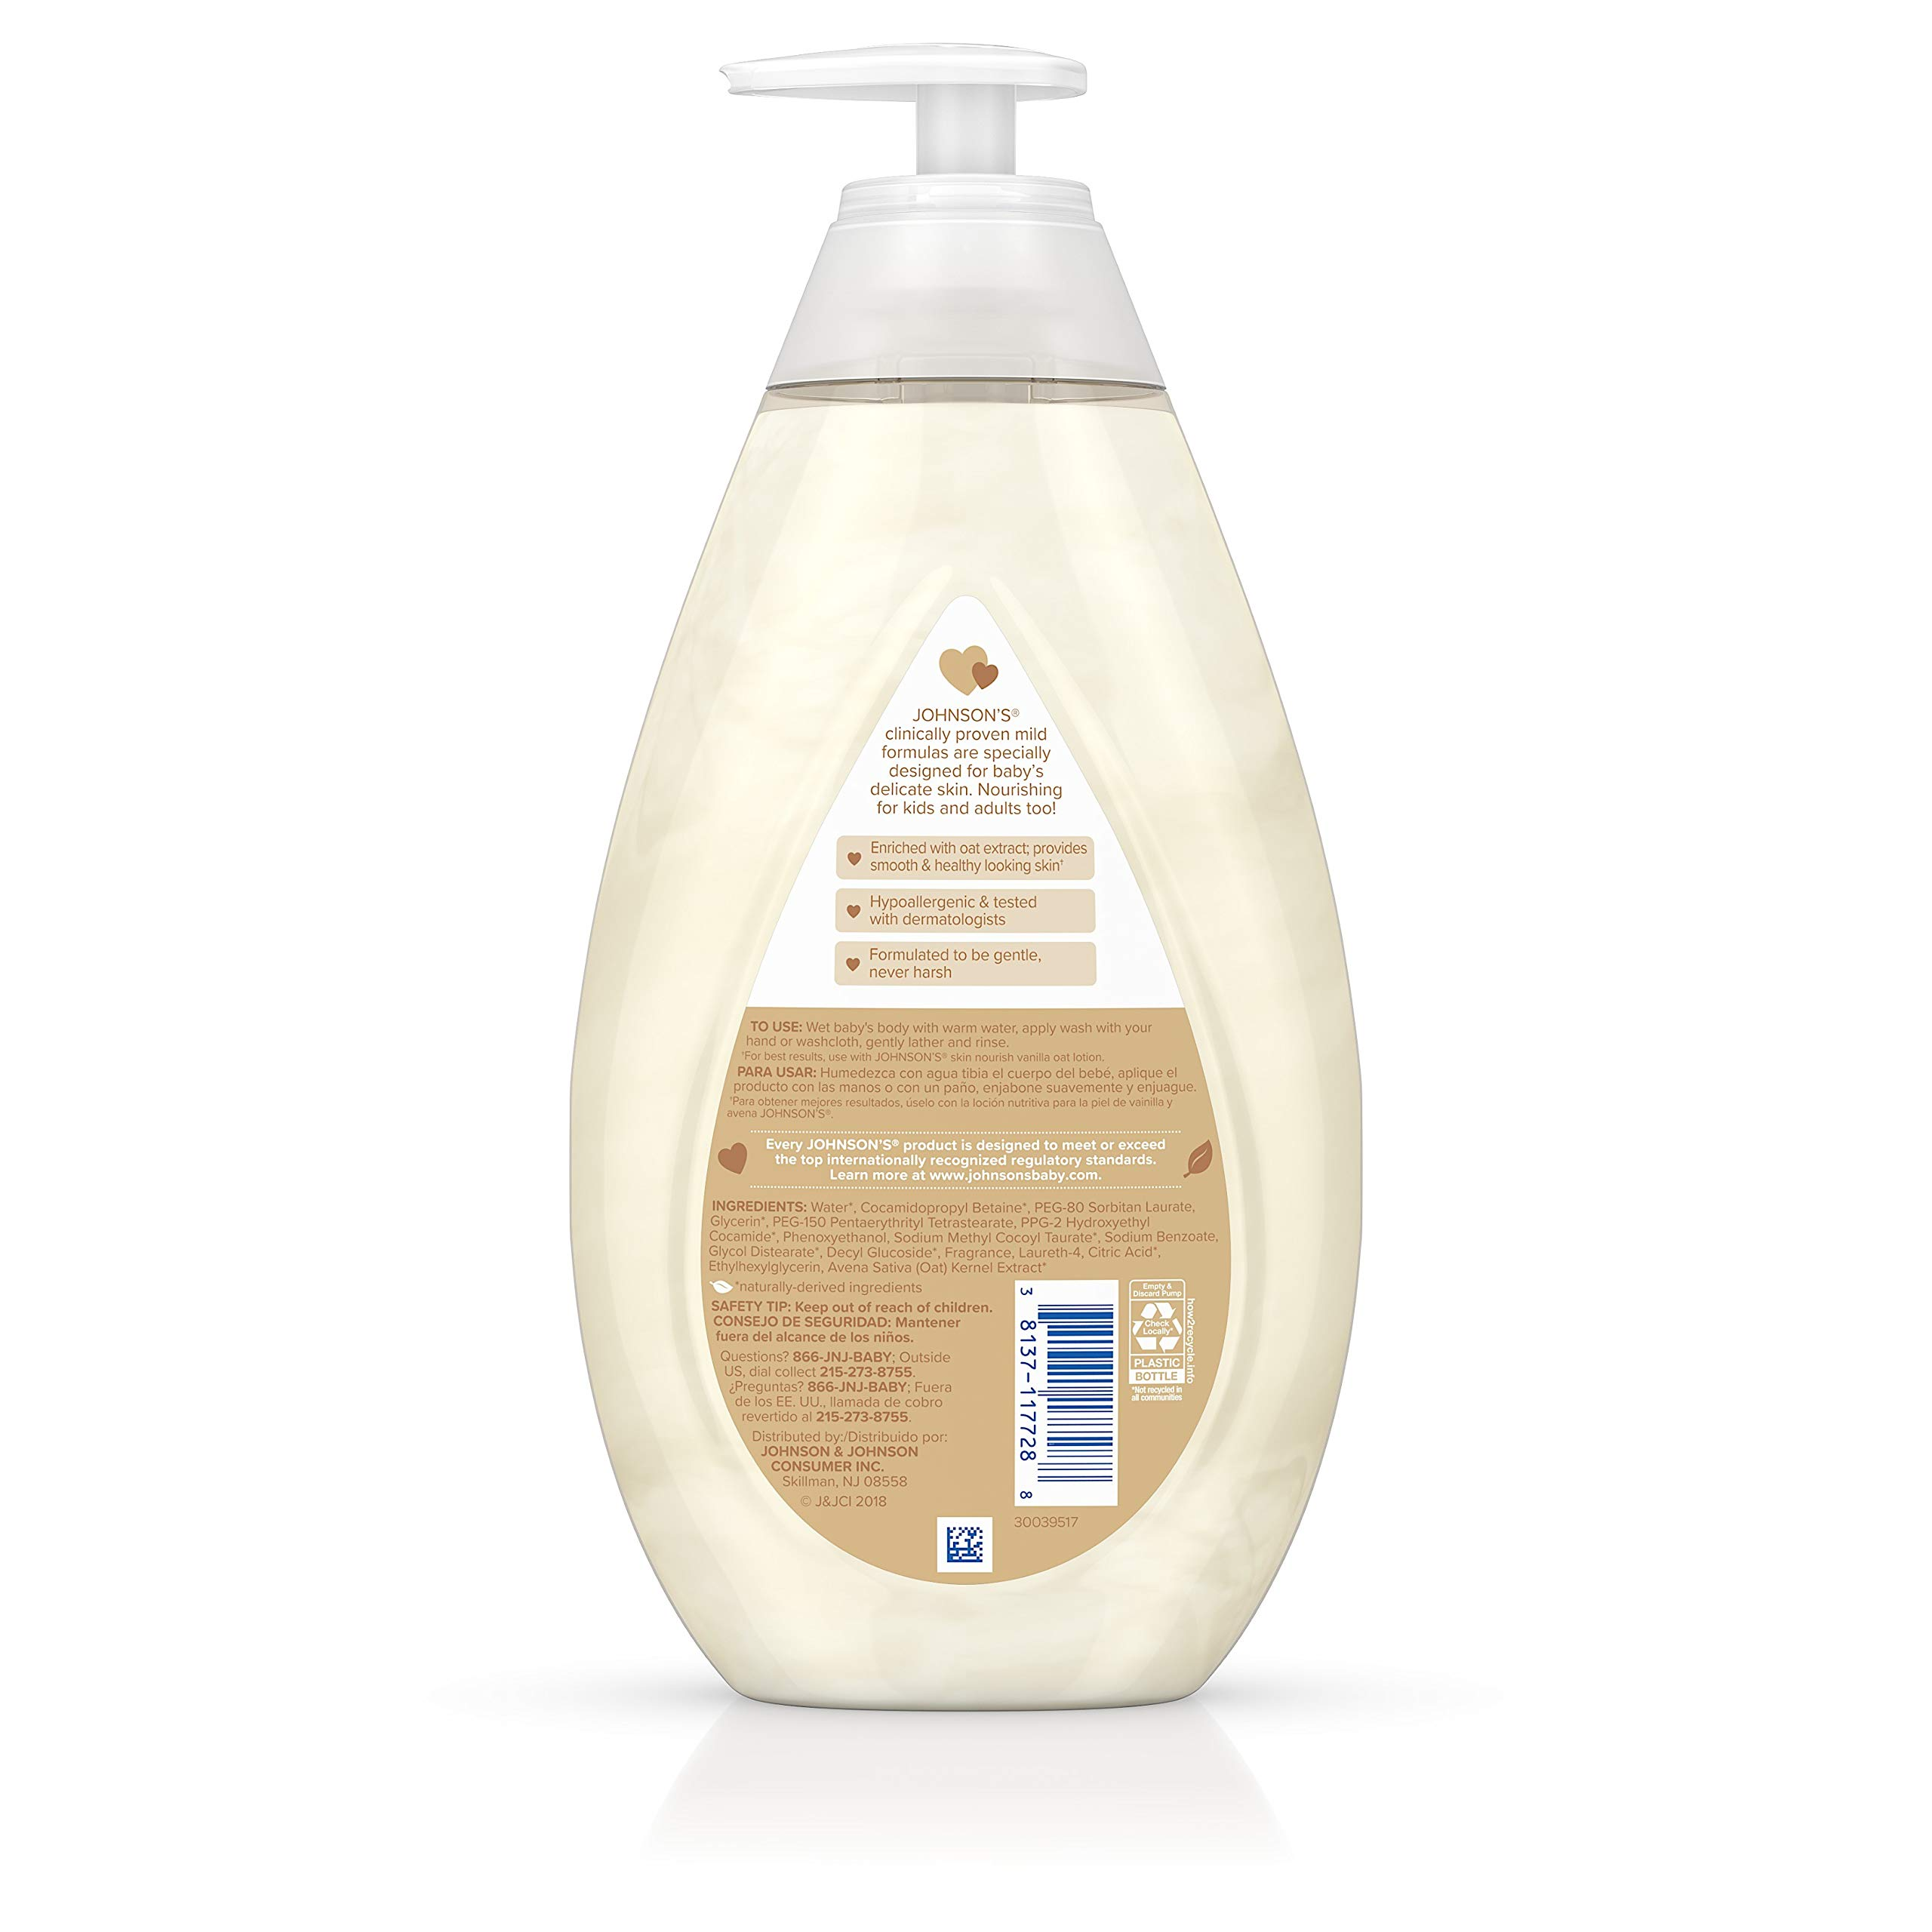 Johnson's Baby Skin Nourishing Baby Wash with Vanilla & Oat Extract, Hypoallergenic & Tear Free Baby Wash, 27.1 fl. oz